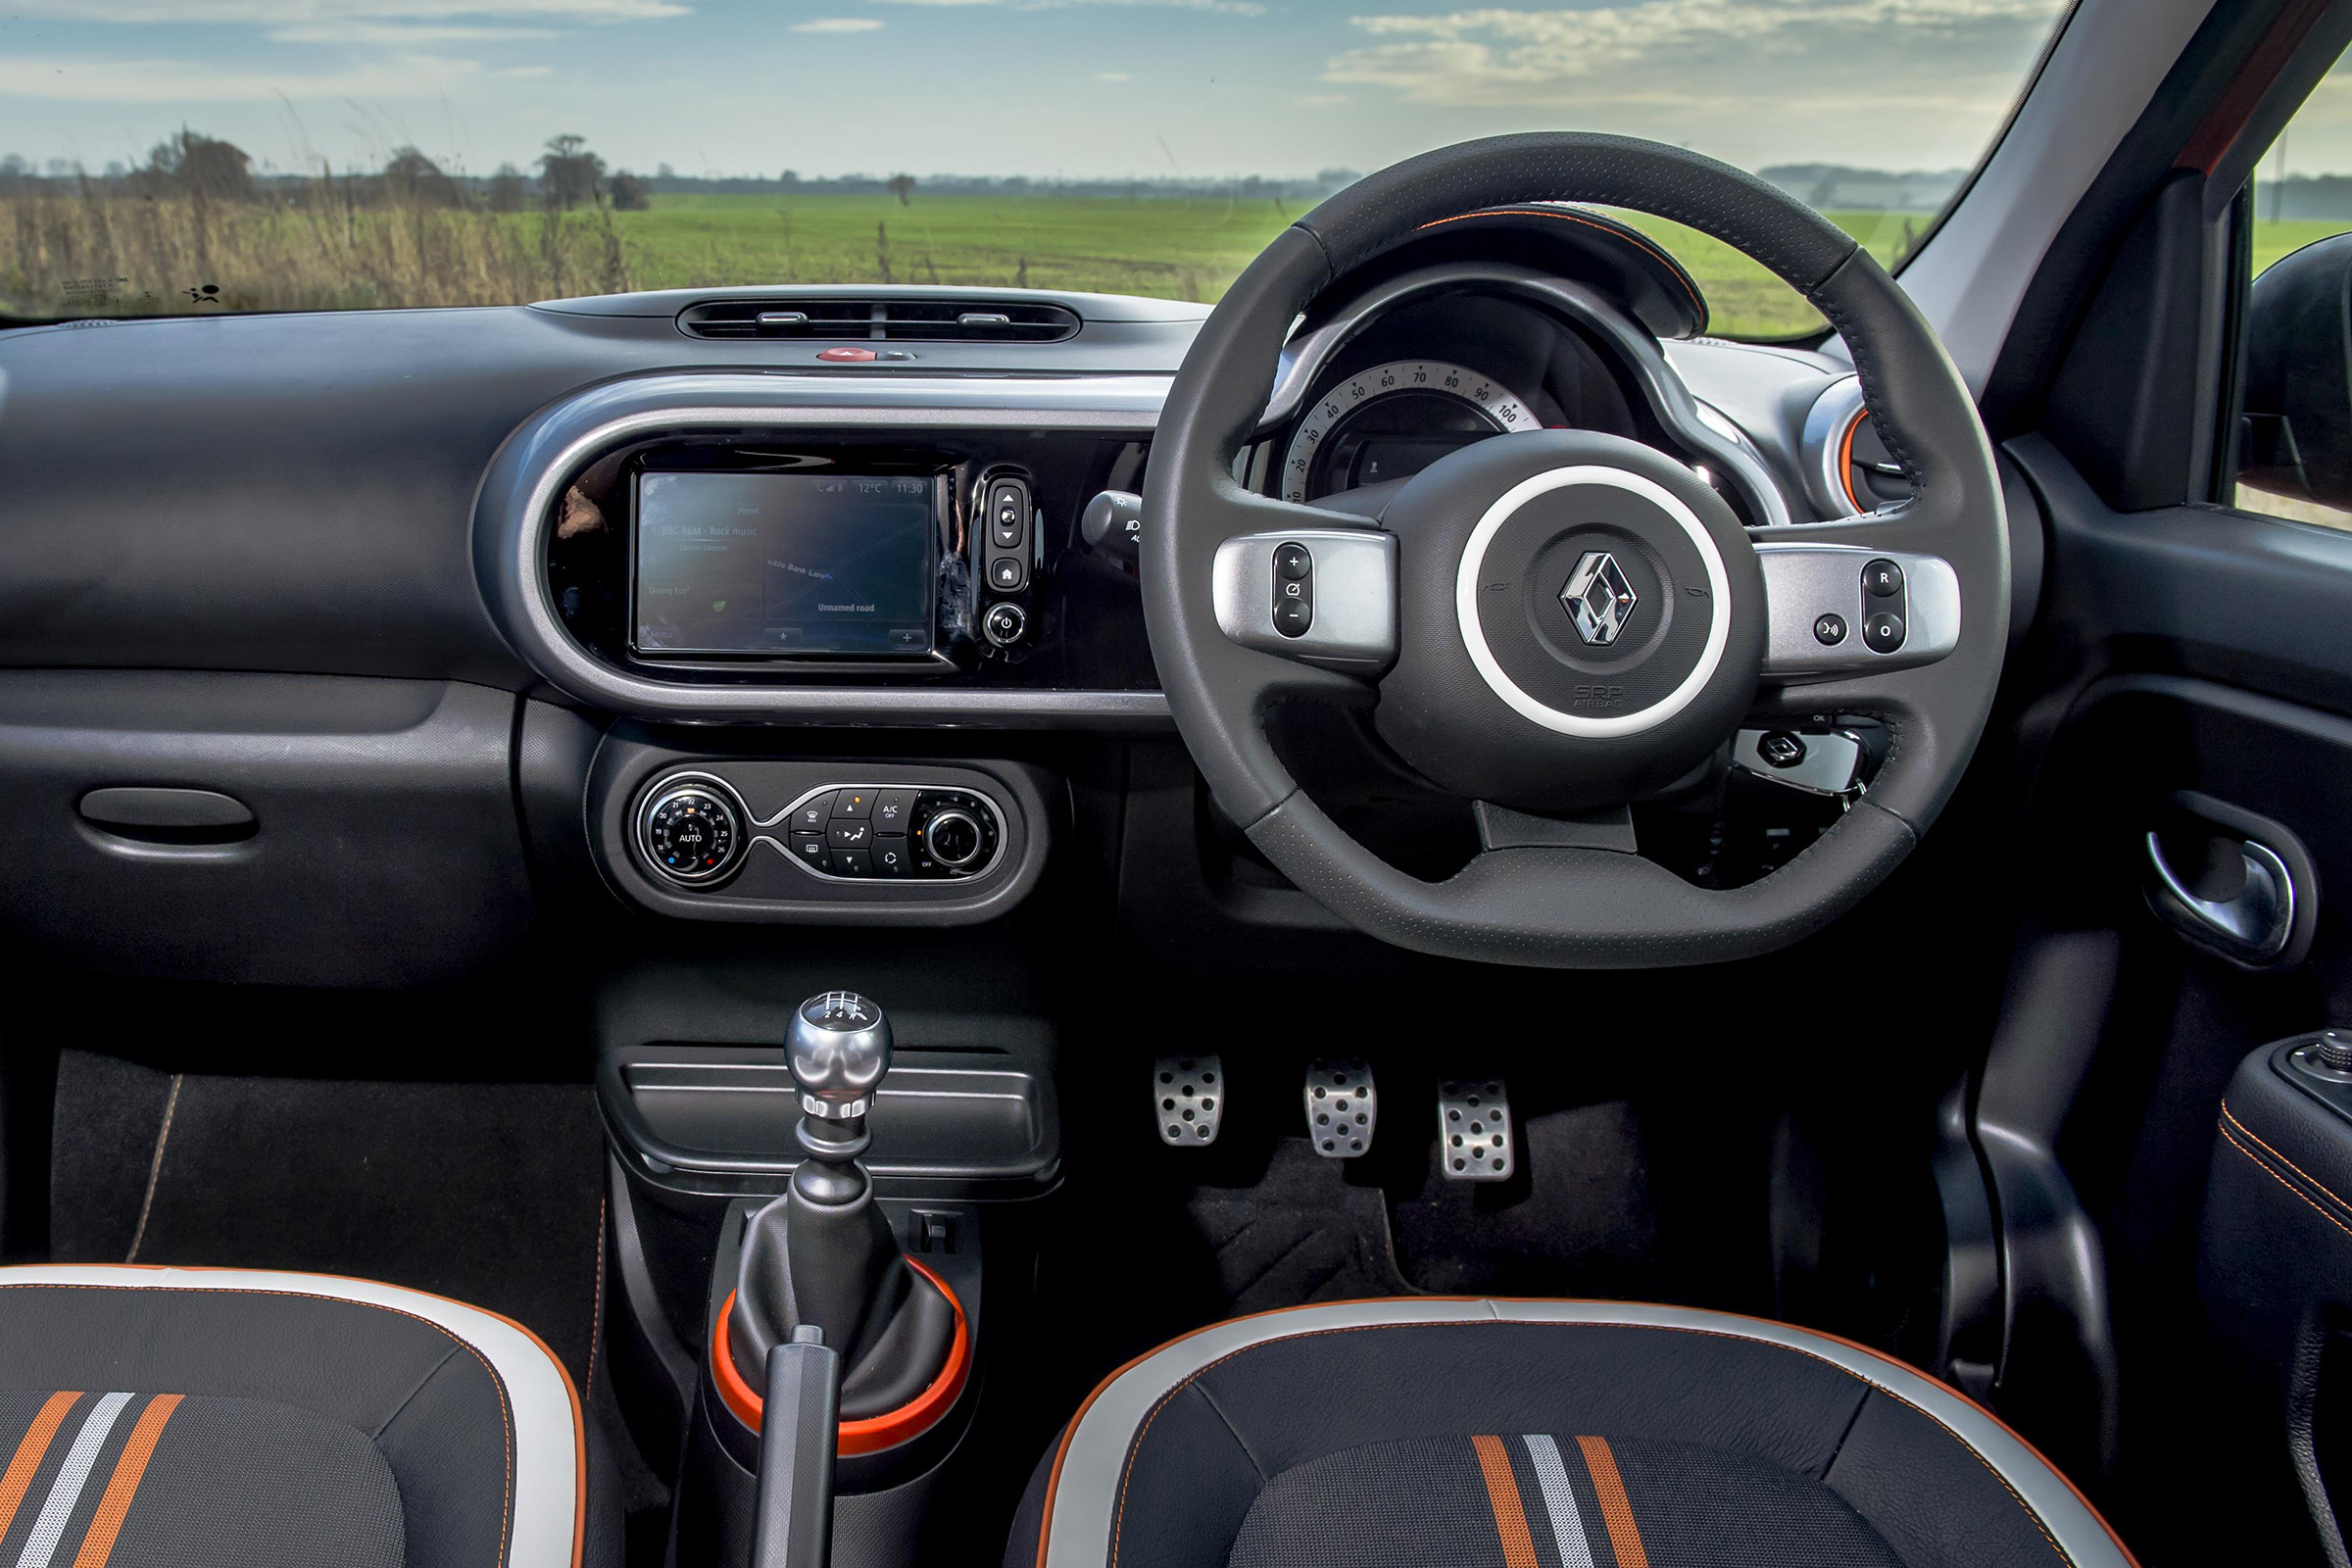 2017 Renault Twingo GT Interior View Driver Cockpit Steering (Photo 11 of 20)